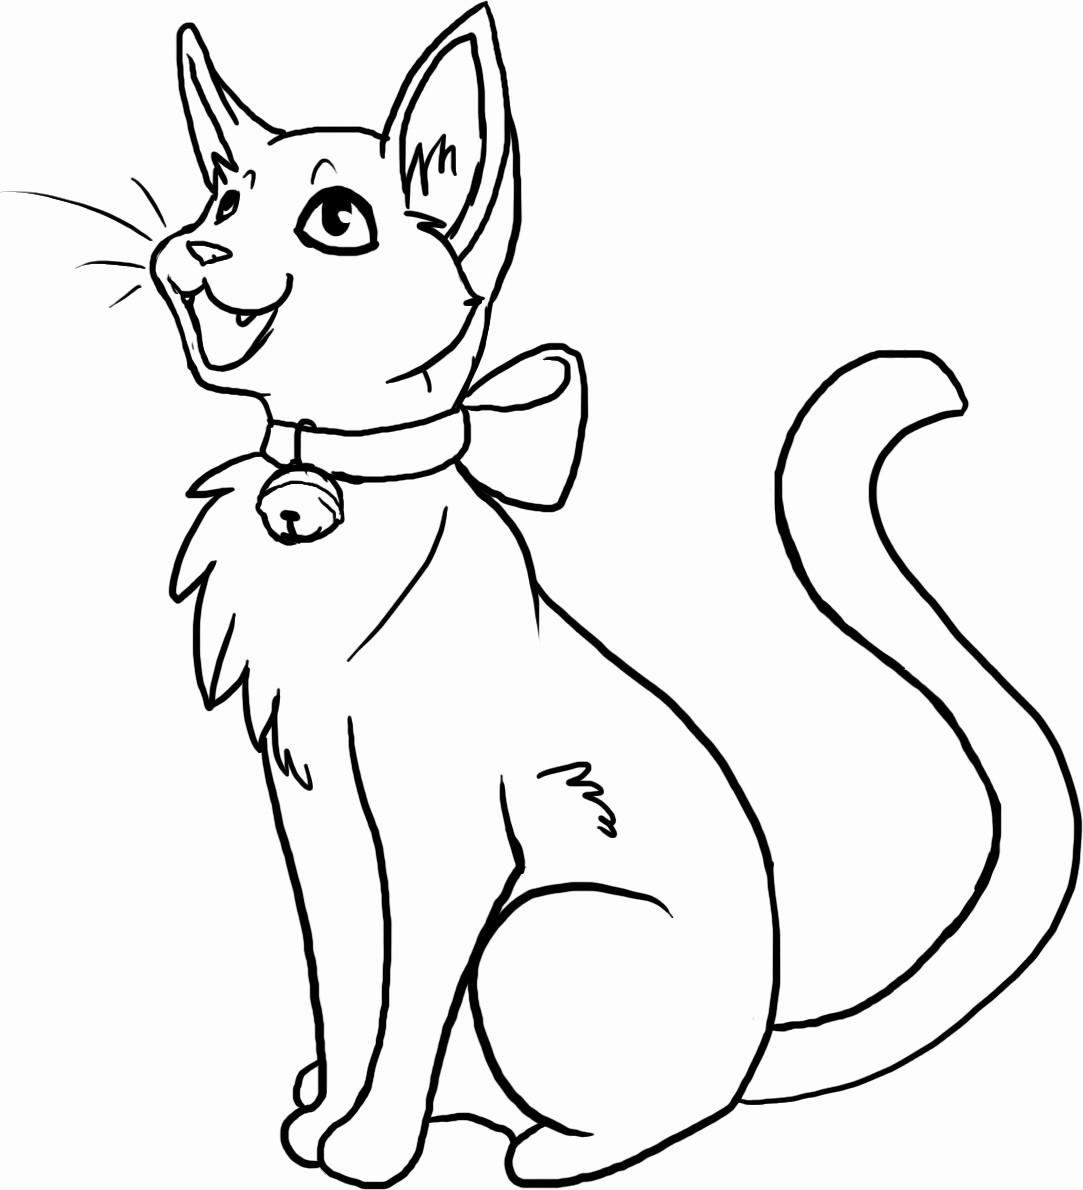 warrior cat coloring pages warrior cat coloring pages to print coloring home pages cat coloring warrior